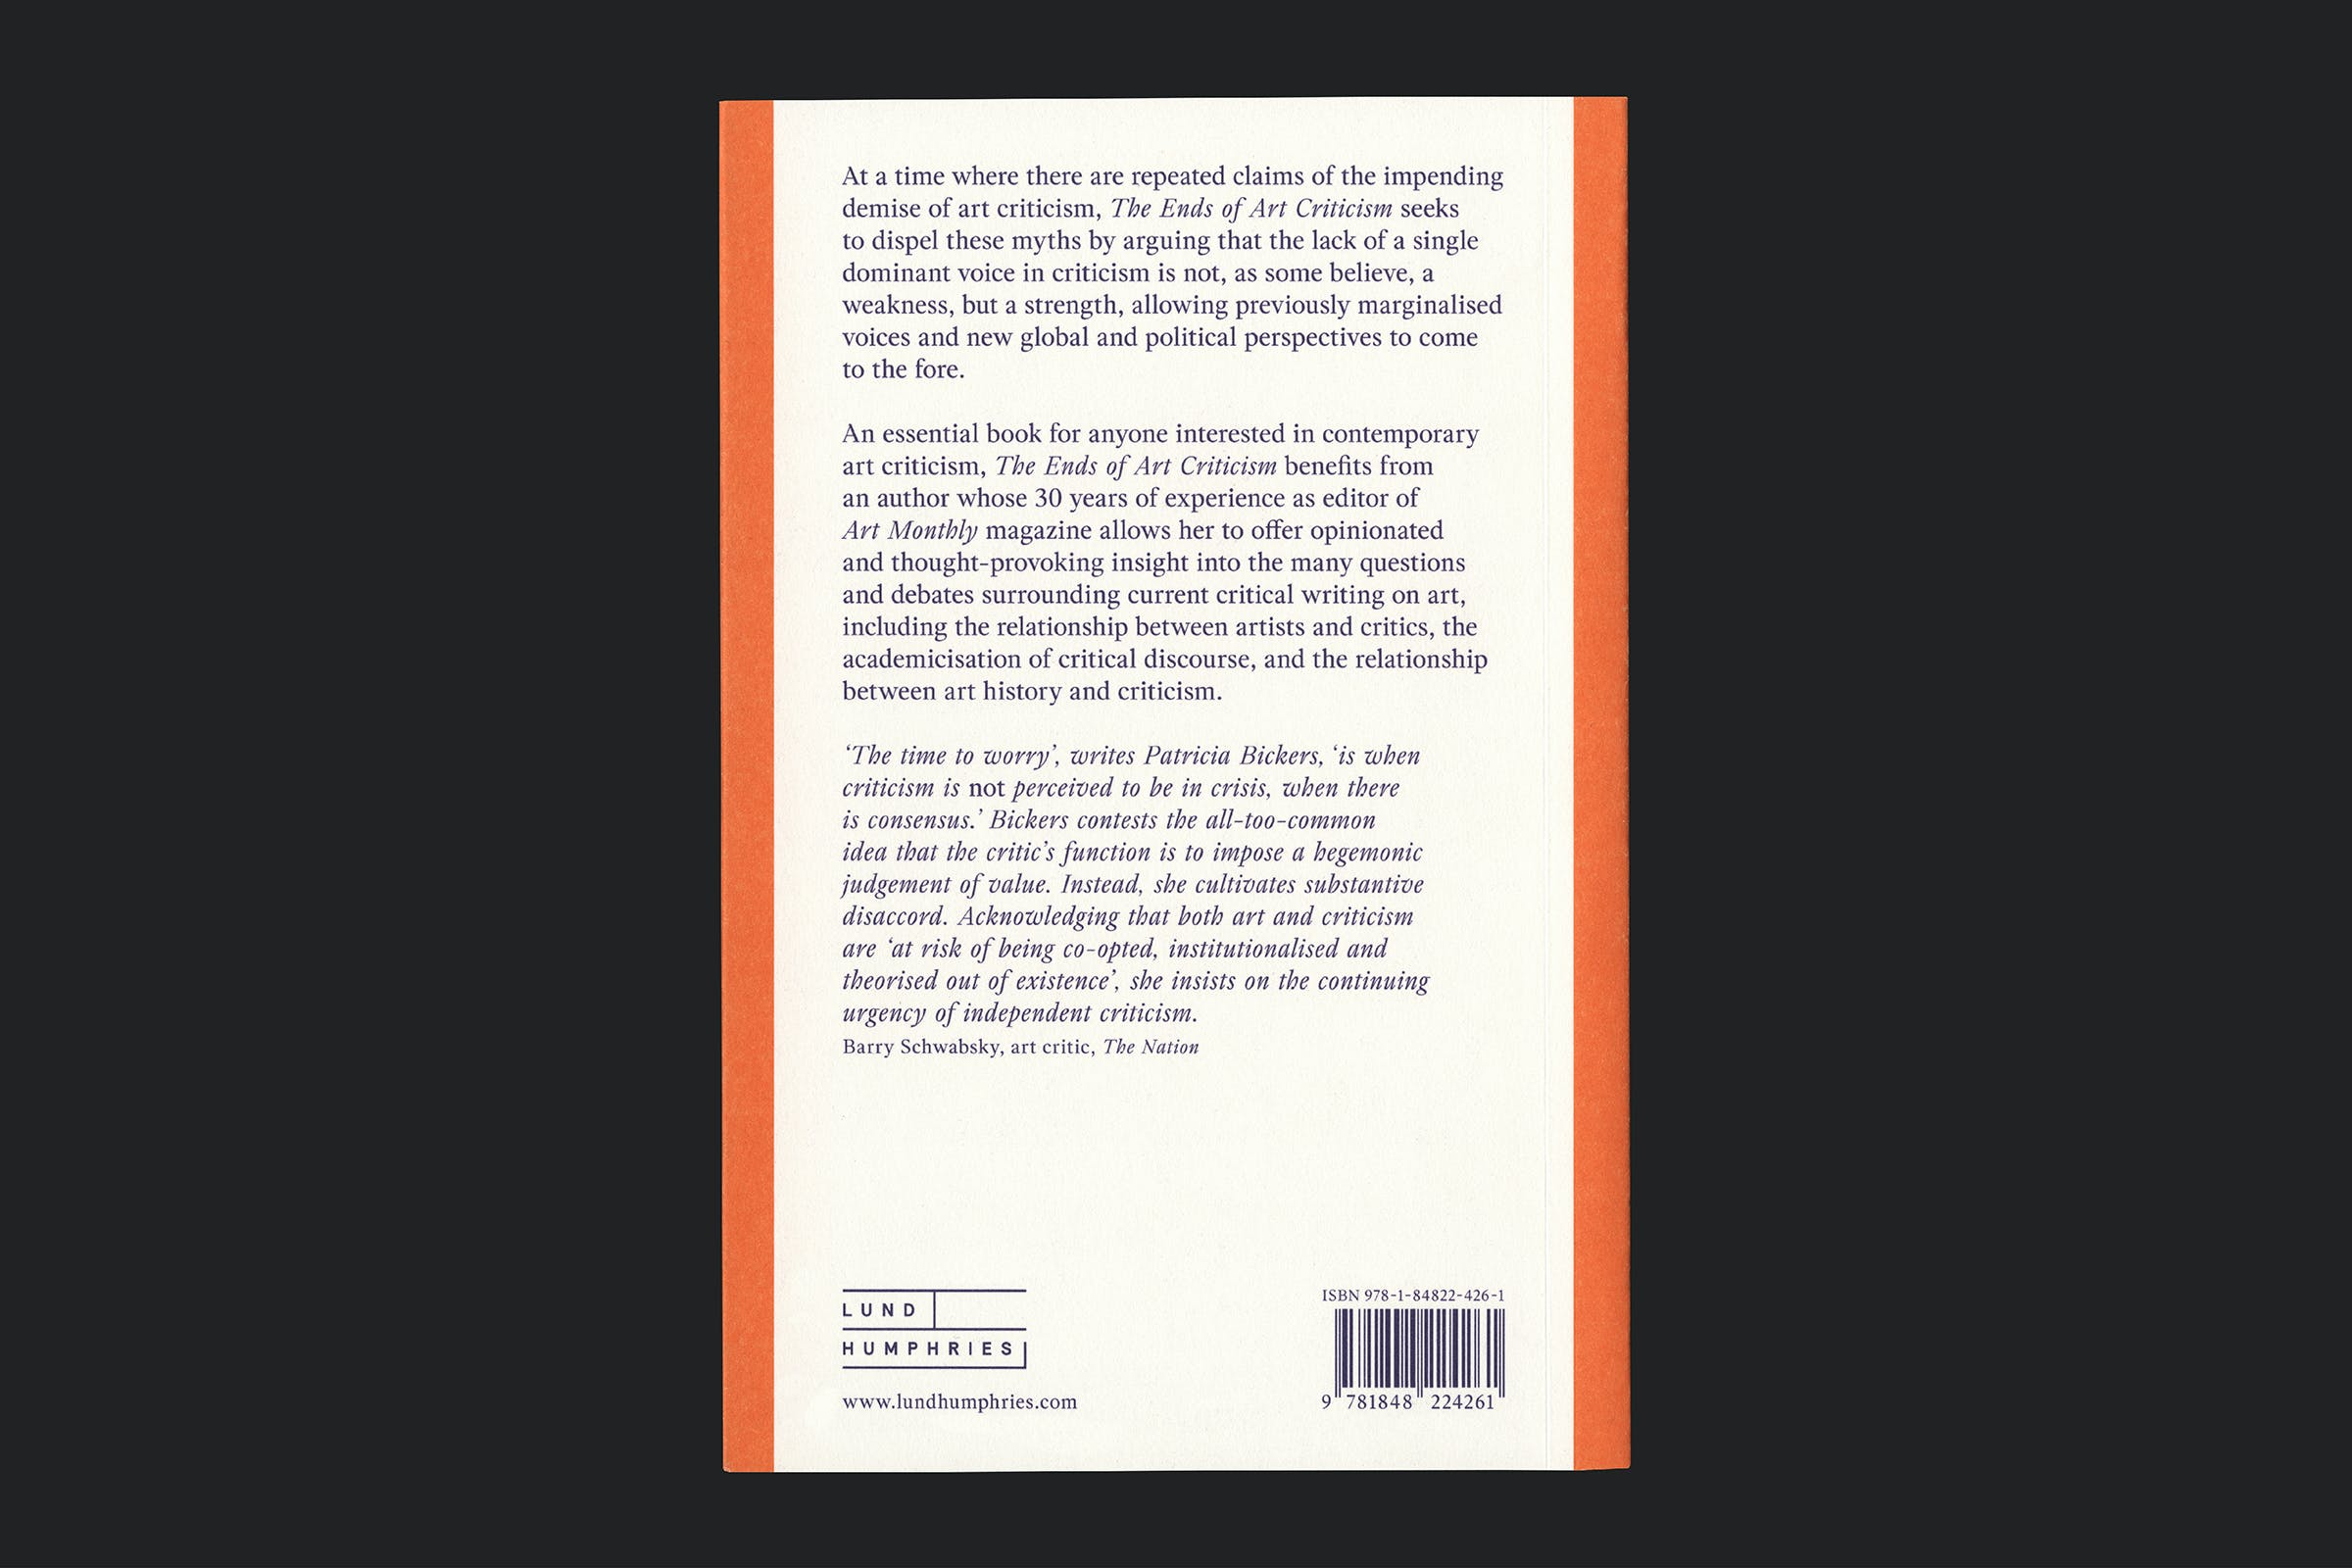 New Directions in Contemporary Art, Lund Humphries, Publication, Graphic Design by Wolfe Hall